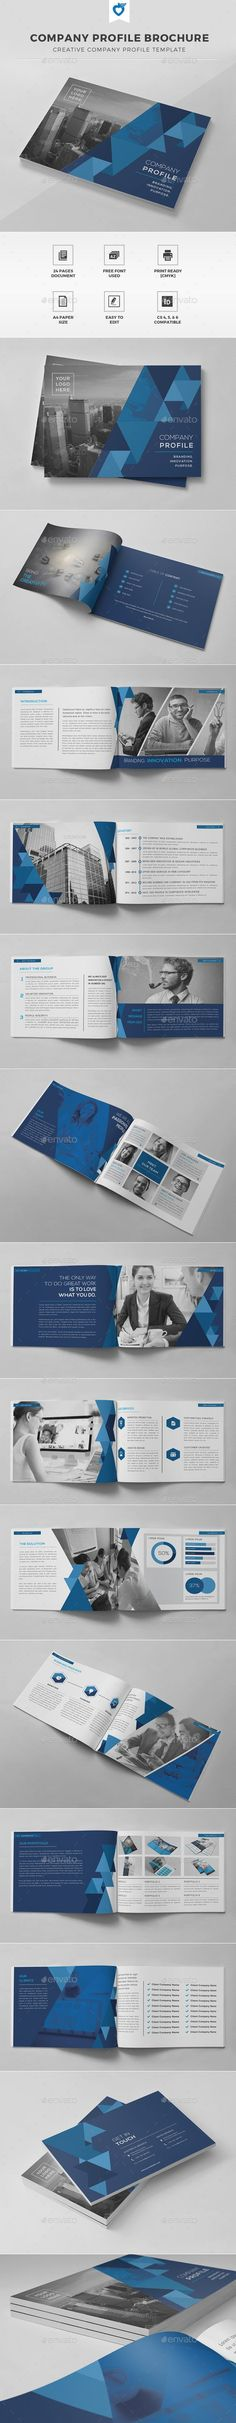 Get your attractive and professional real-estate brochure design within 24 hour. Corporate Profile, Corporate Id, Corporate Brochure Design, Company Brochure, Brochure Layout, Ad Company, Free Brochure, Creative Brochure, Travel Brochure